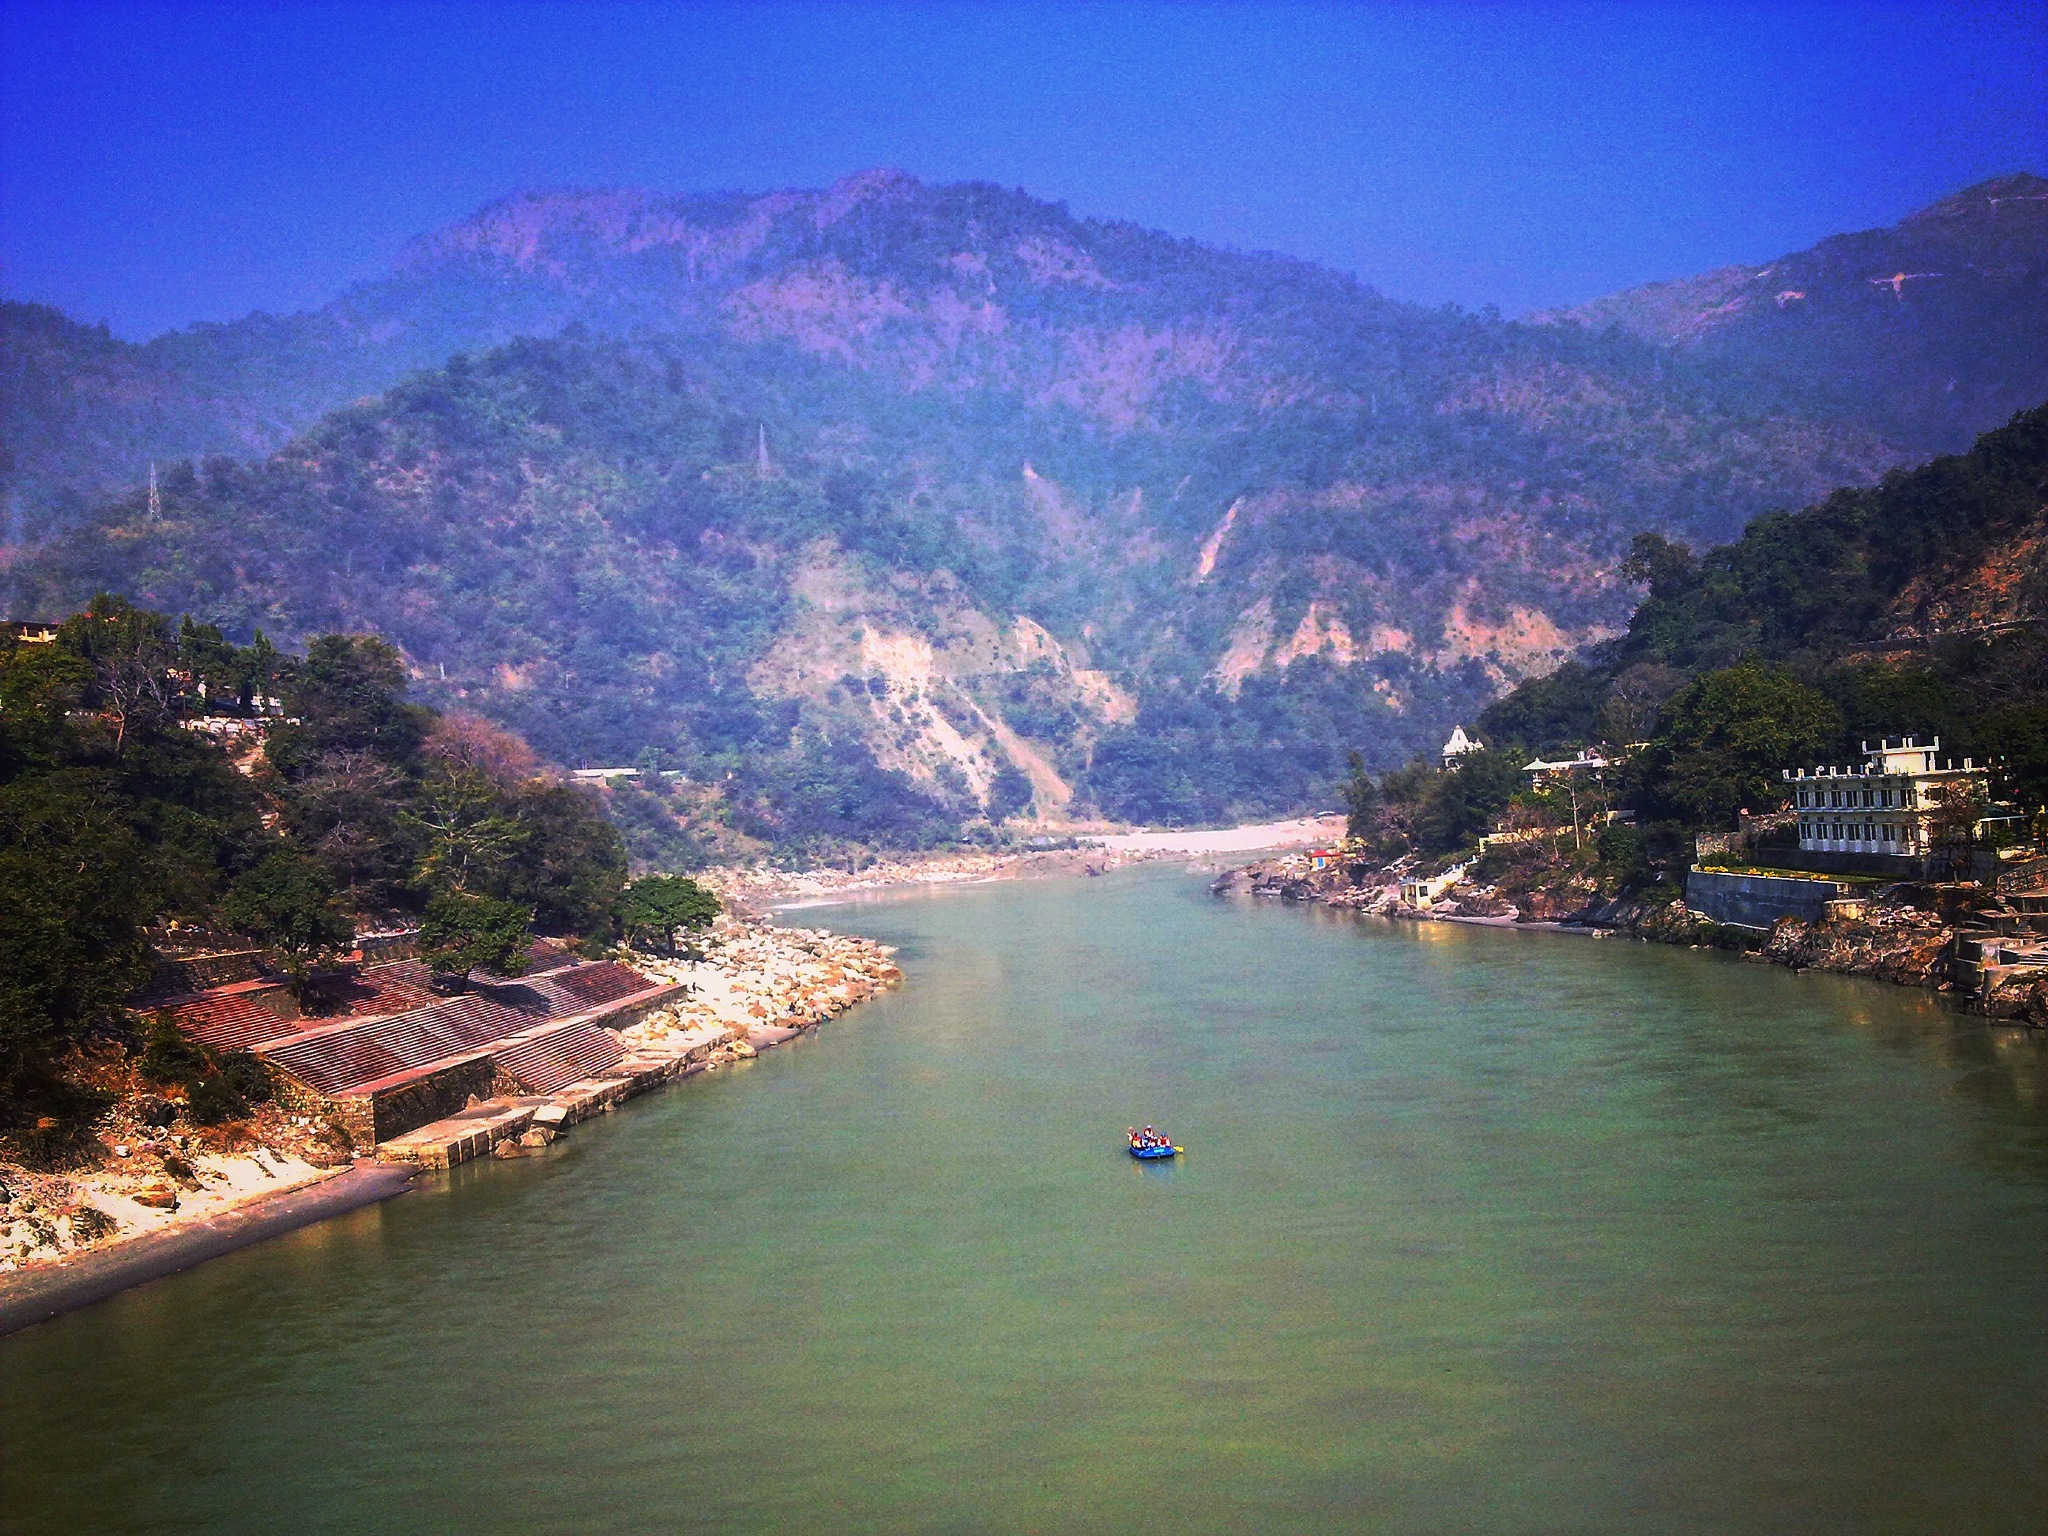 The Ganges river  by Mohammad Ahmad Khan